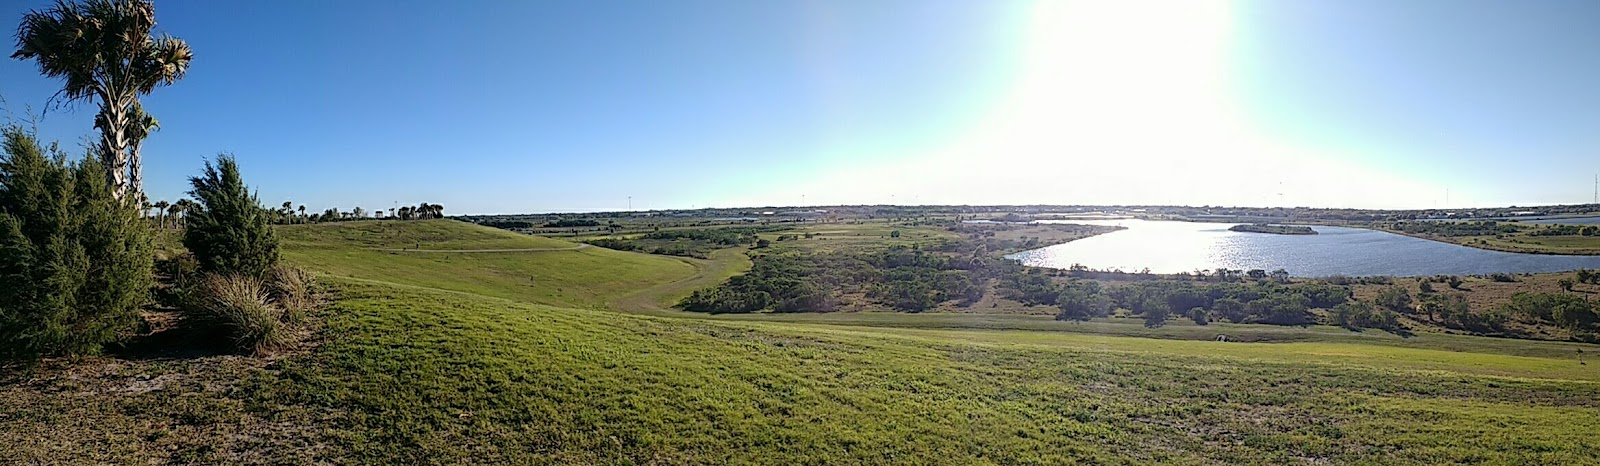 celery fields pan.jpg